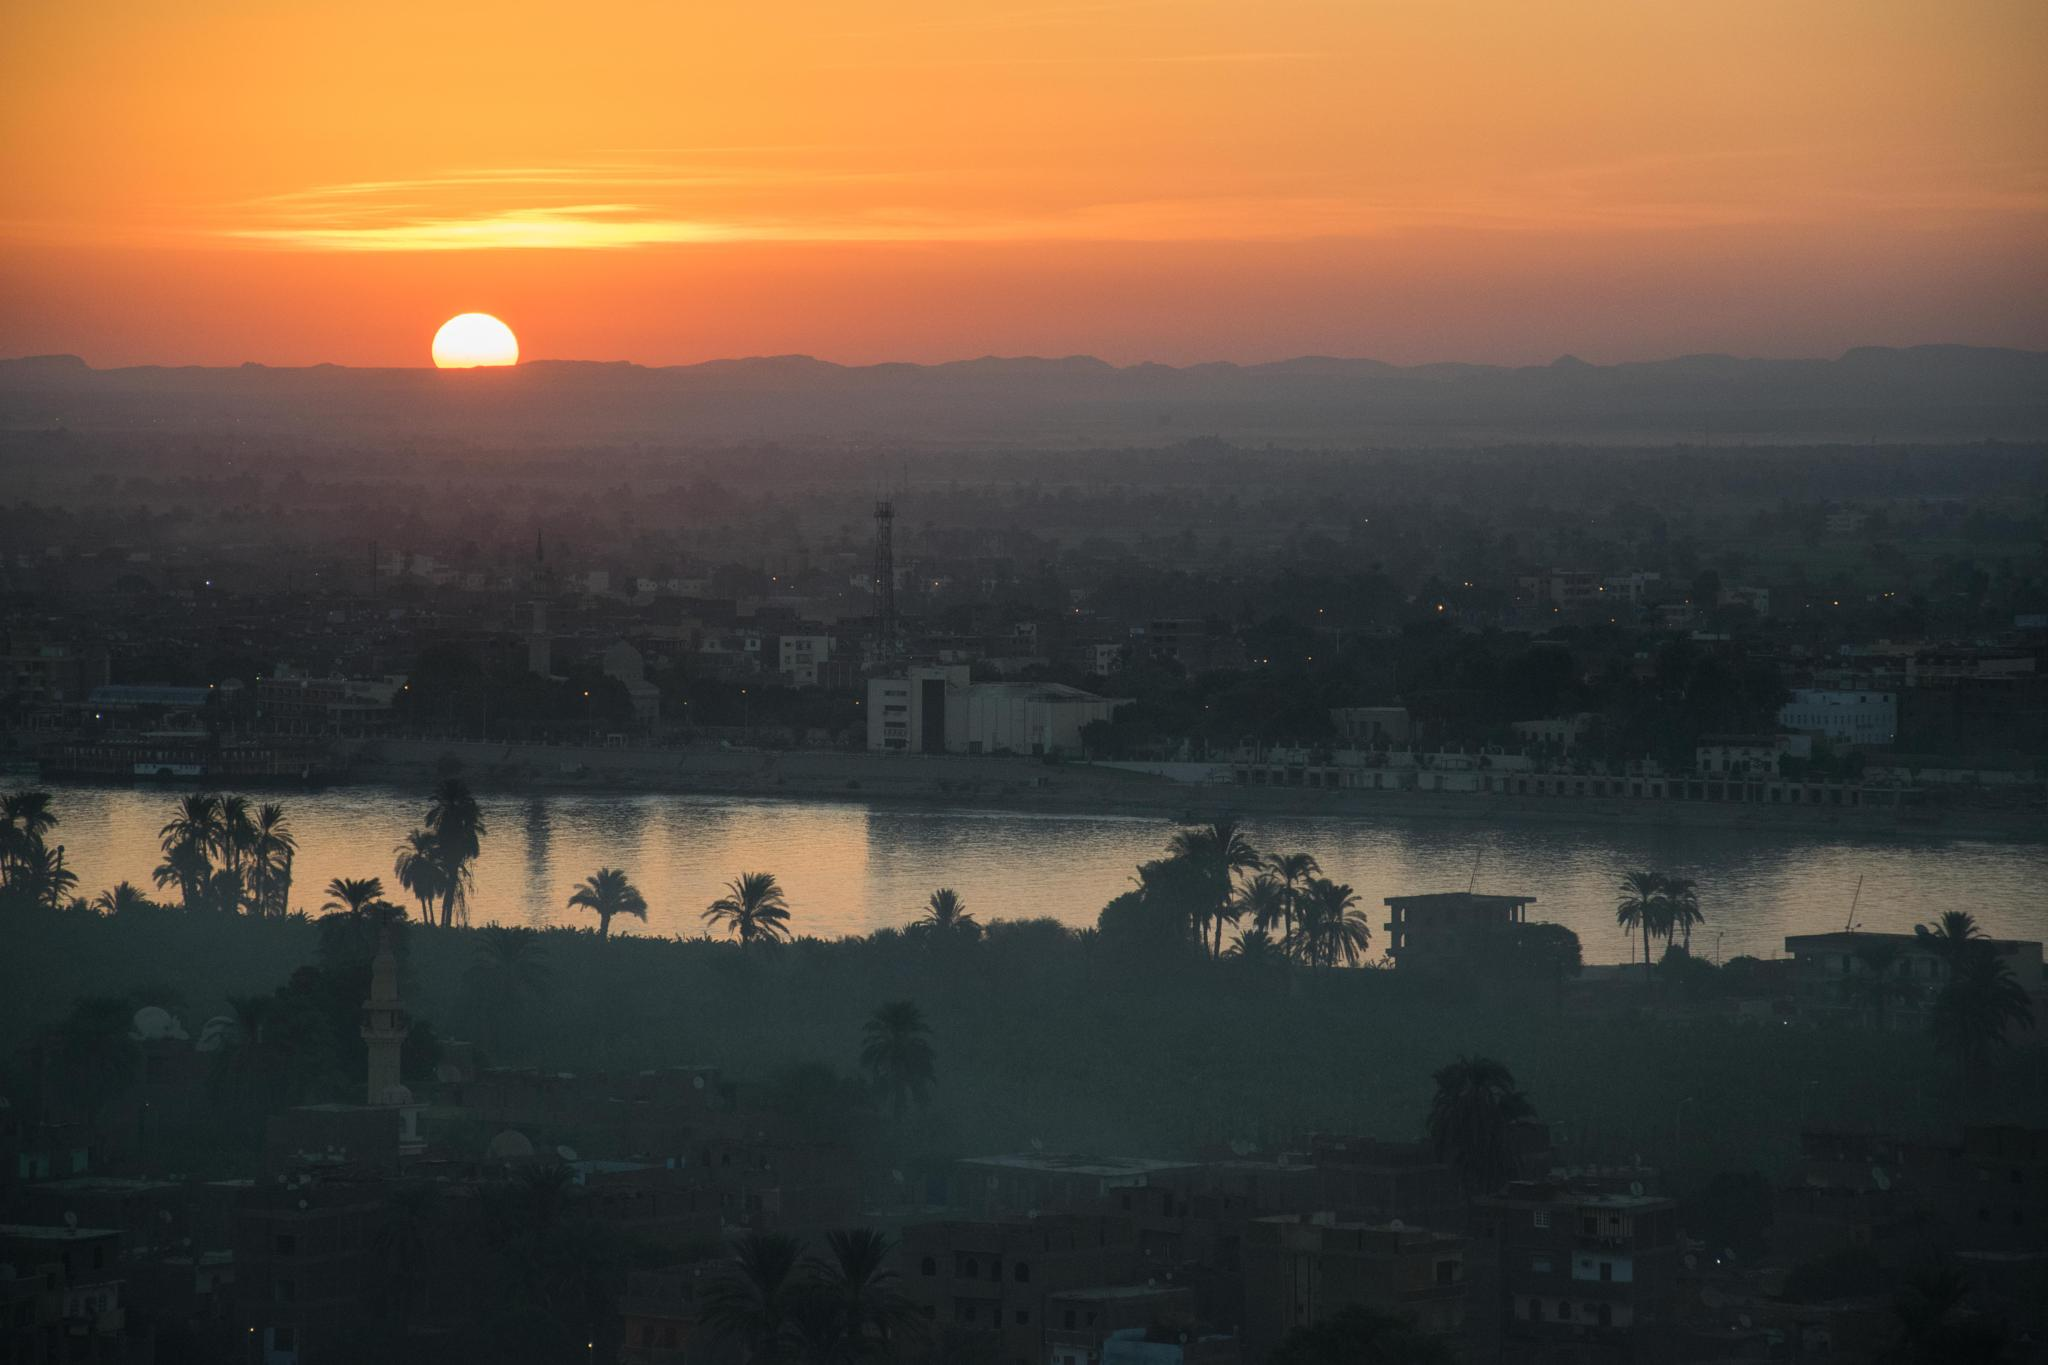 Sunset over the Nile by akryza